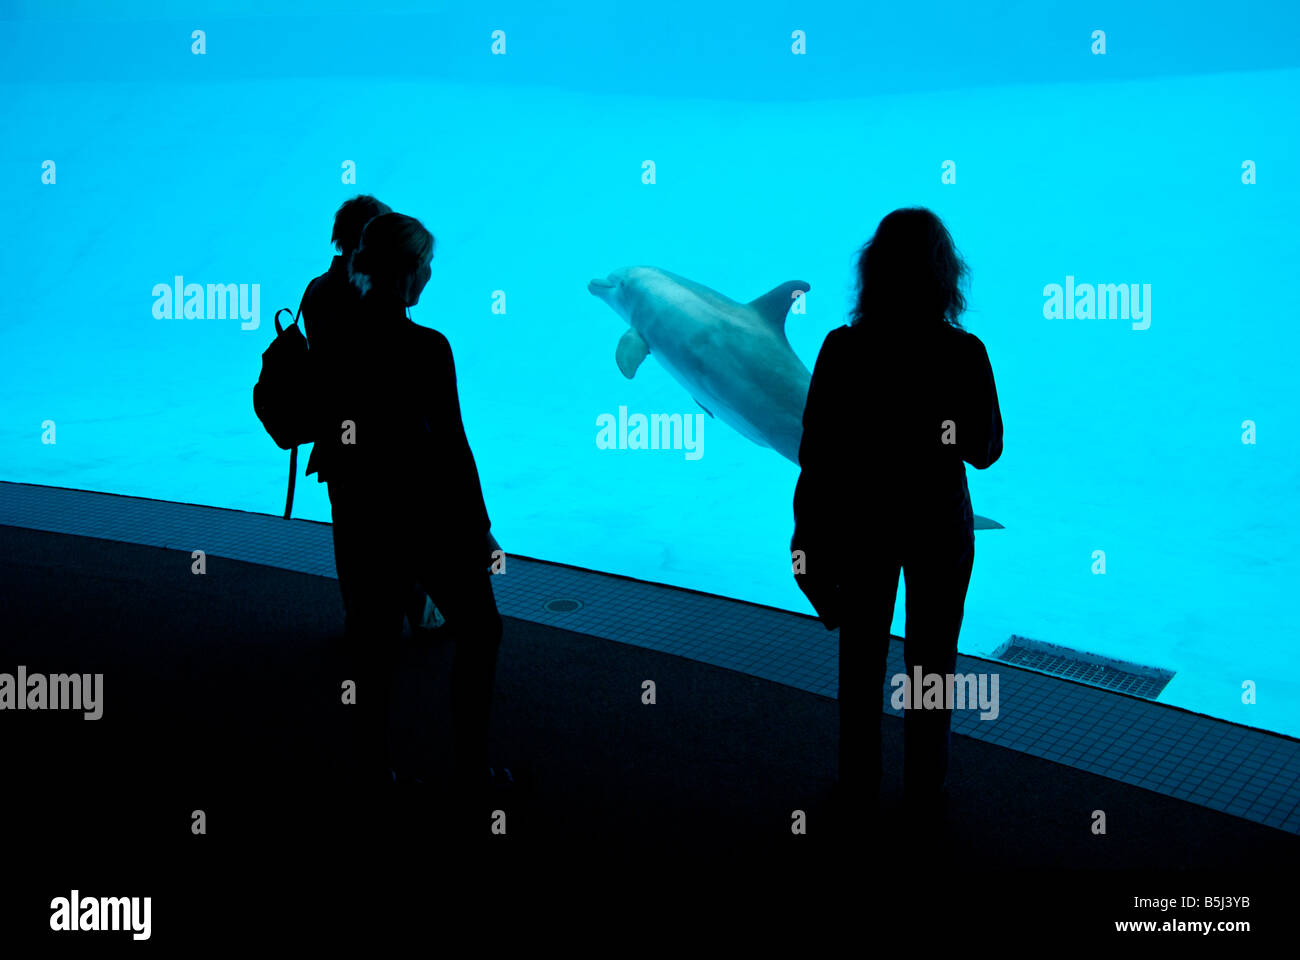 Silhouettes of three women watching Atlantic bottlenose dolphin from underwater viewing area at Texas State Aquarium - Stock Image